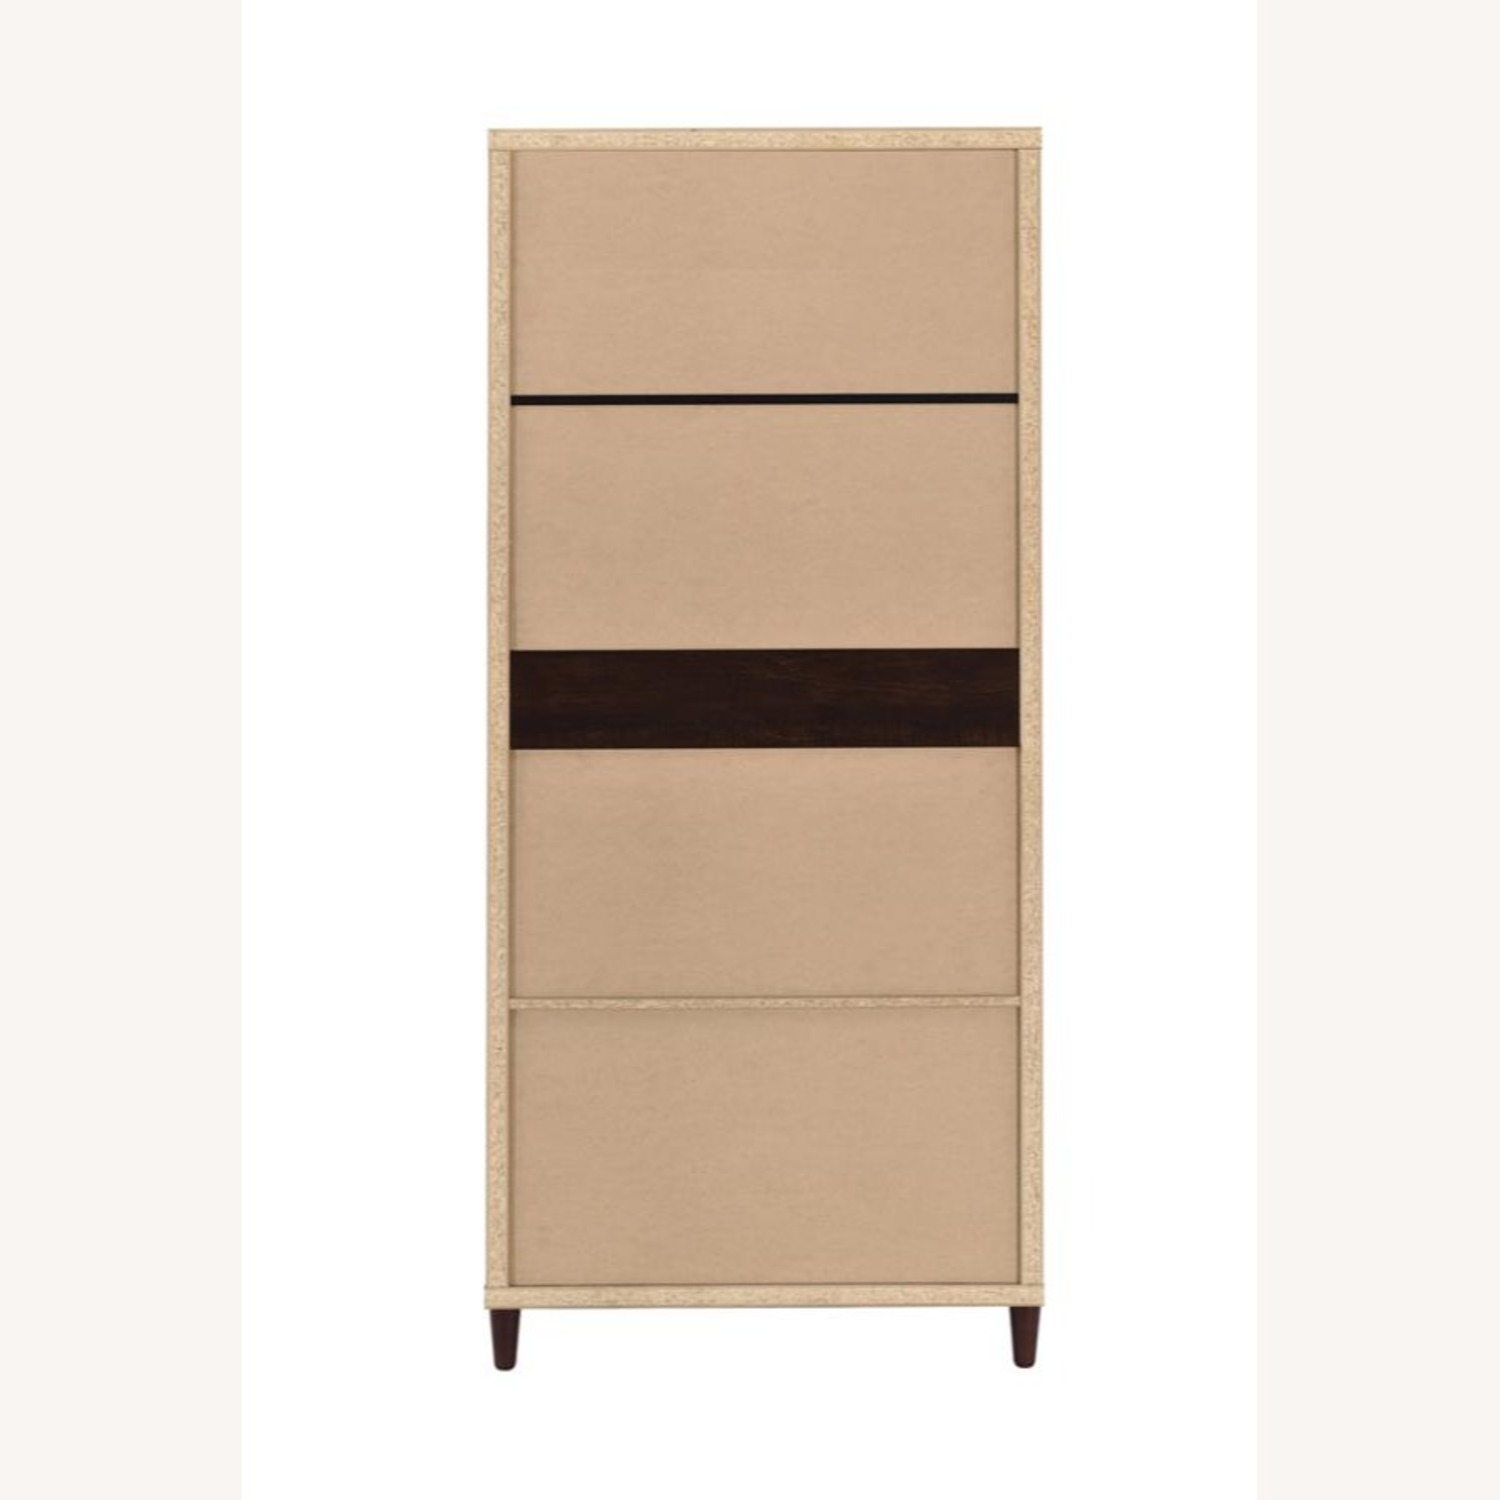 Accent Cabinet In Rich Rustic Tobacco Finish - image-3